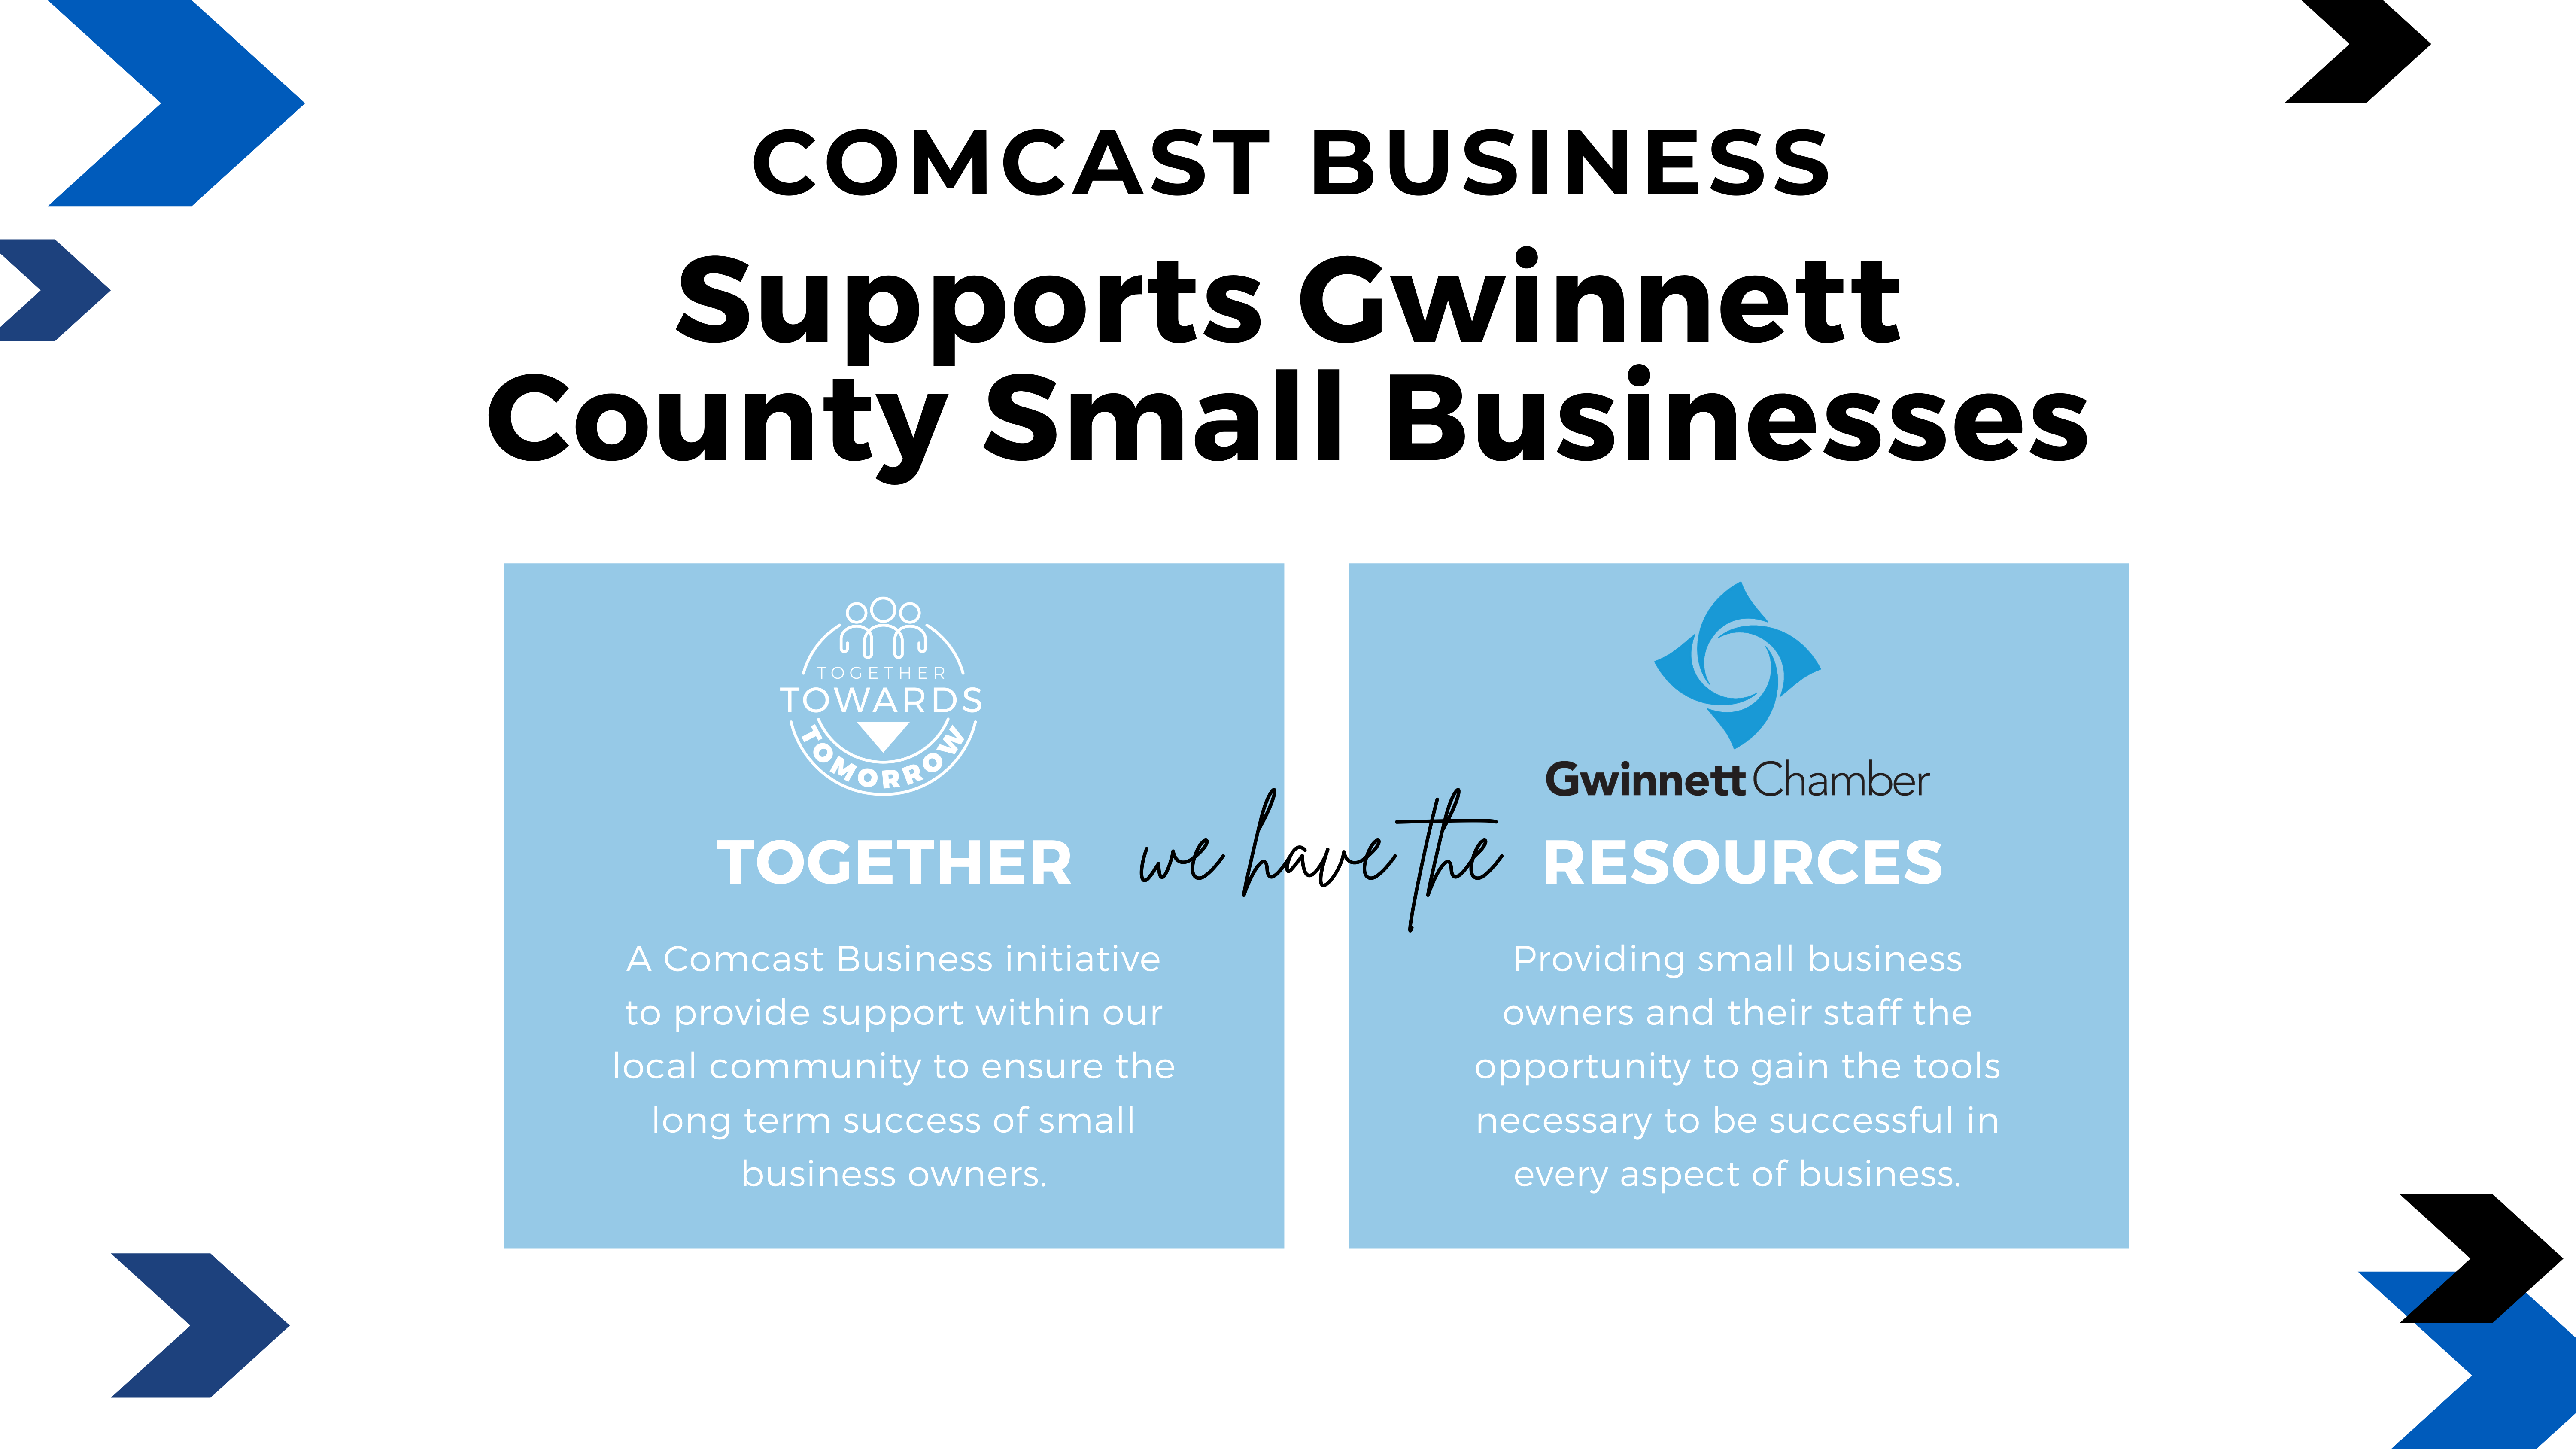 Comcast Business Announces Together Towards Tomorrow Campaign to Support Small Businesses Impacted by Pandemic